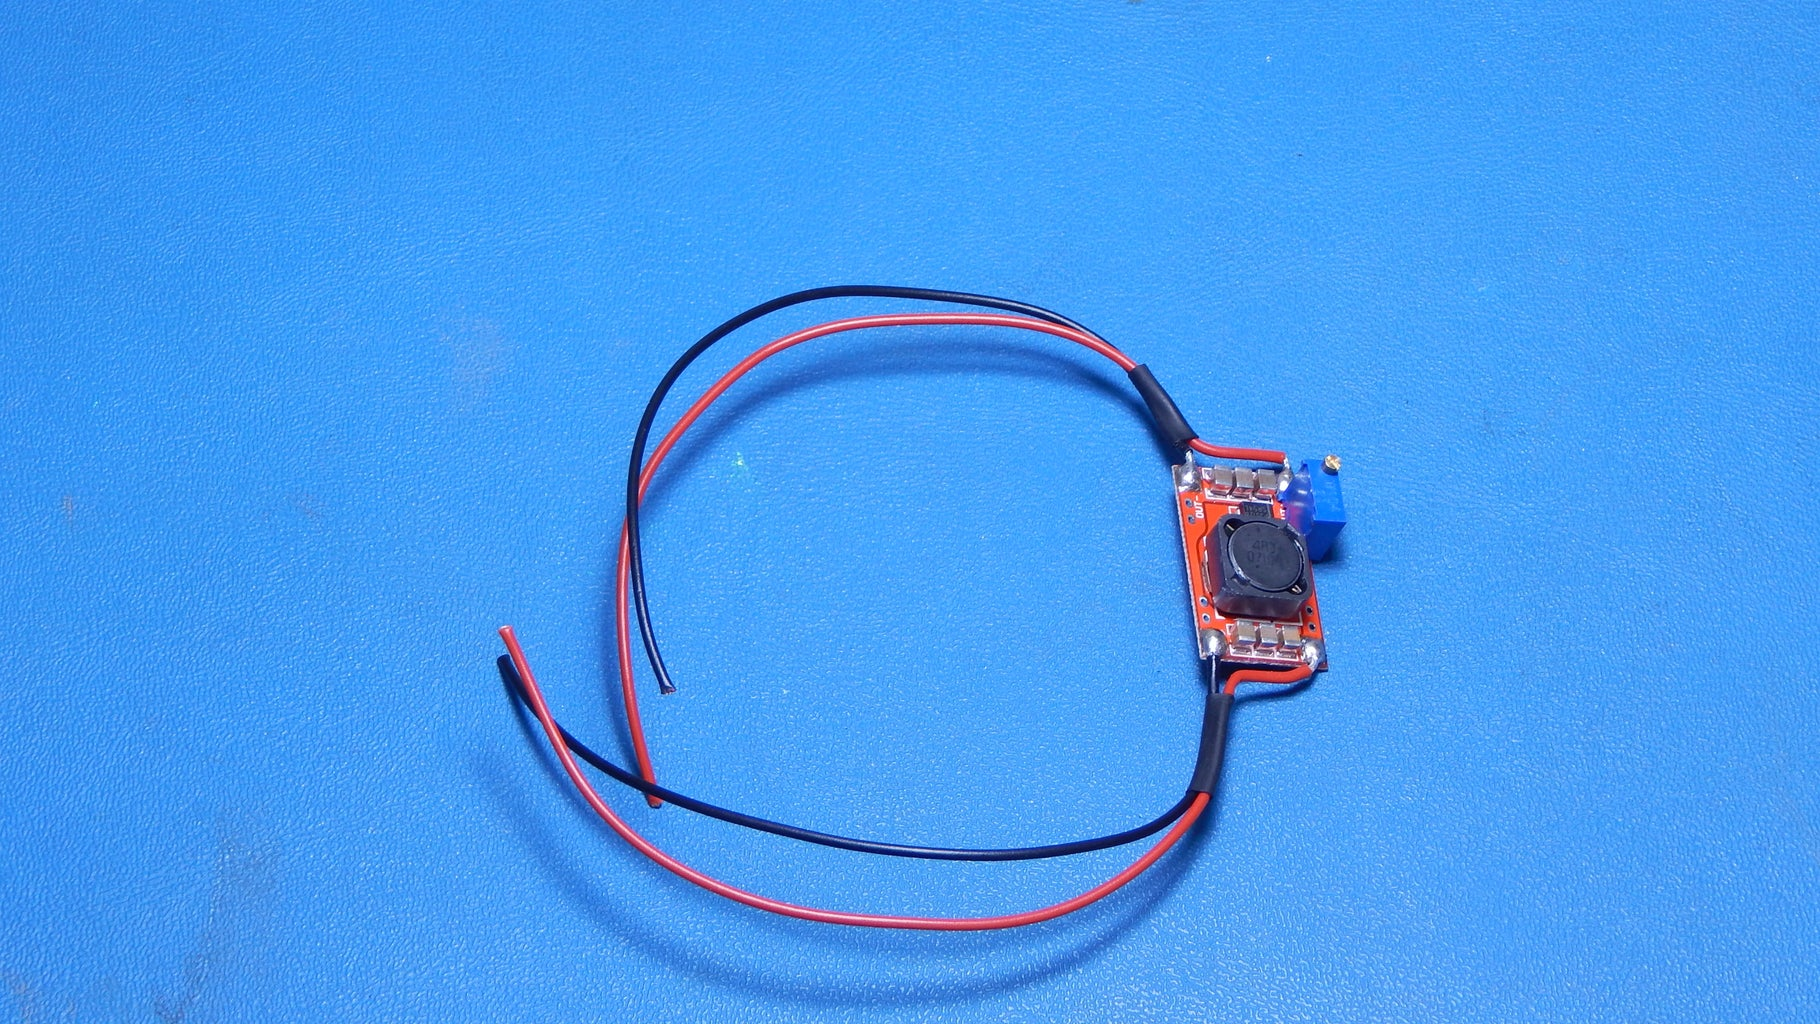 Wiring the Boost Circuit